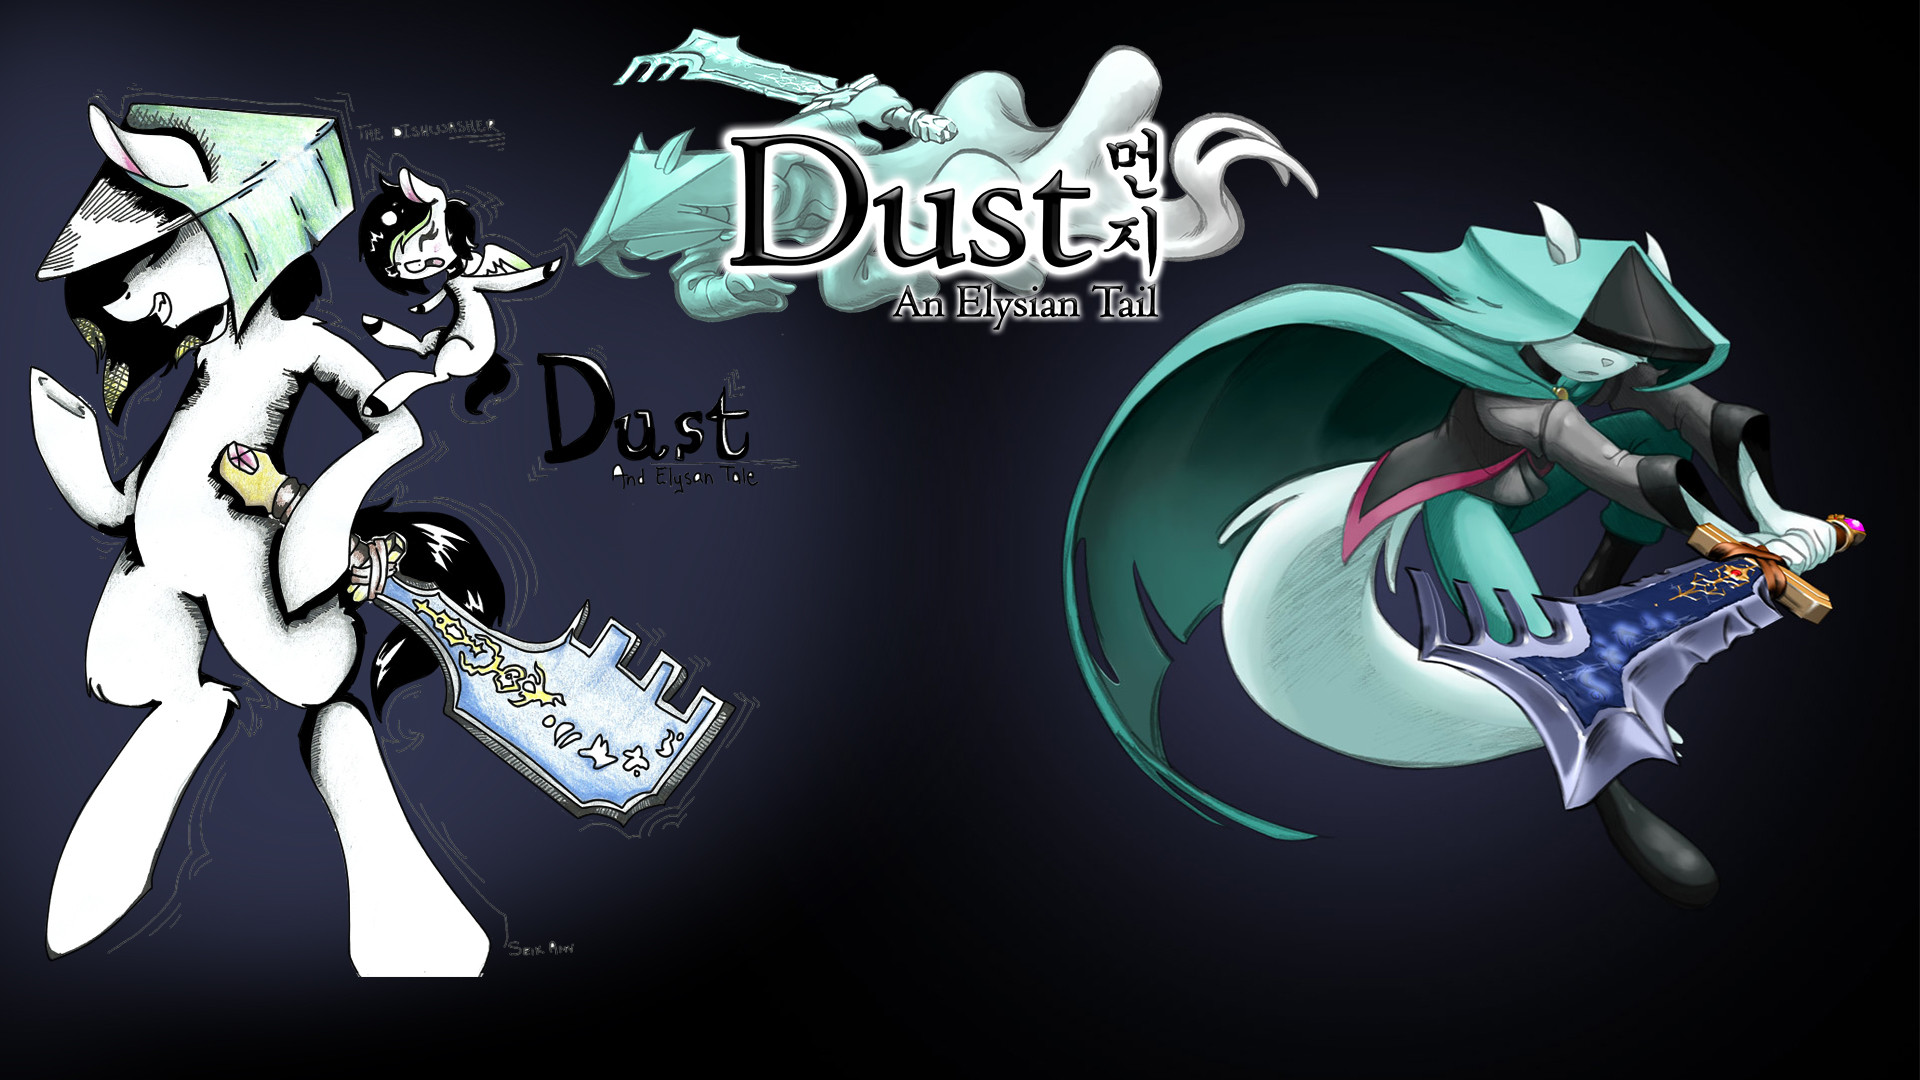 … Dust An Elysian Tail and a Diswasher Lets Play by TheDiswasher16